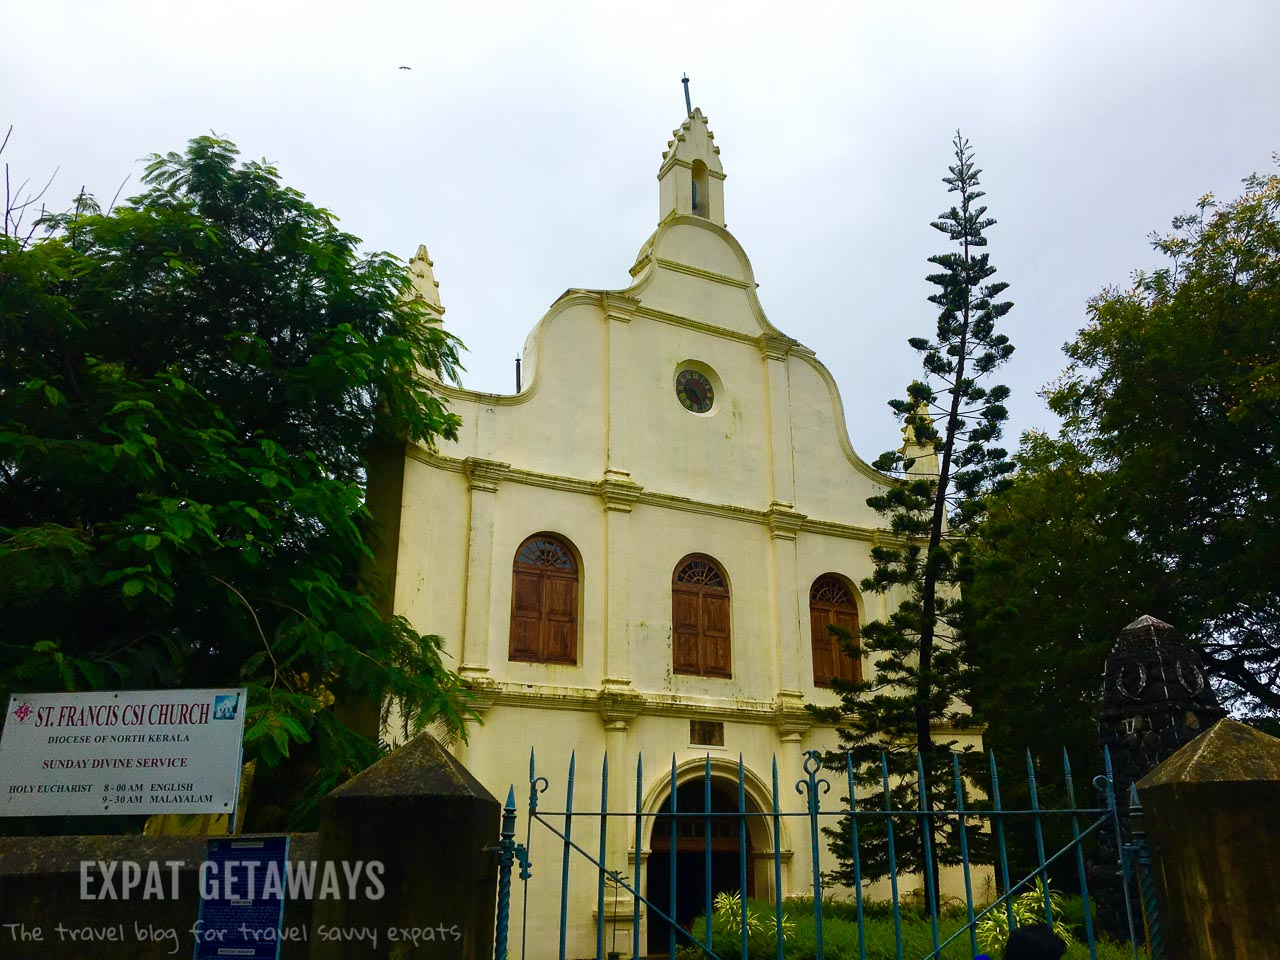 The St Francis Church was built by the Portuguese in 1503. Expat Getaways - One Week in Kerala, India.